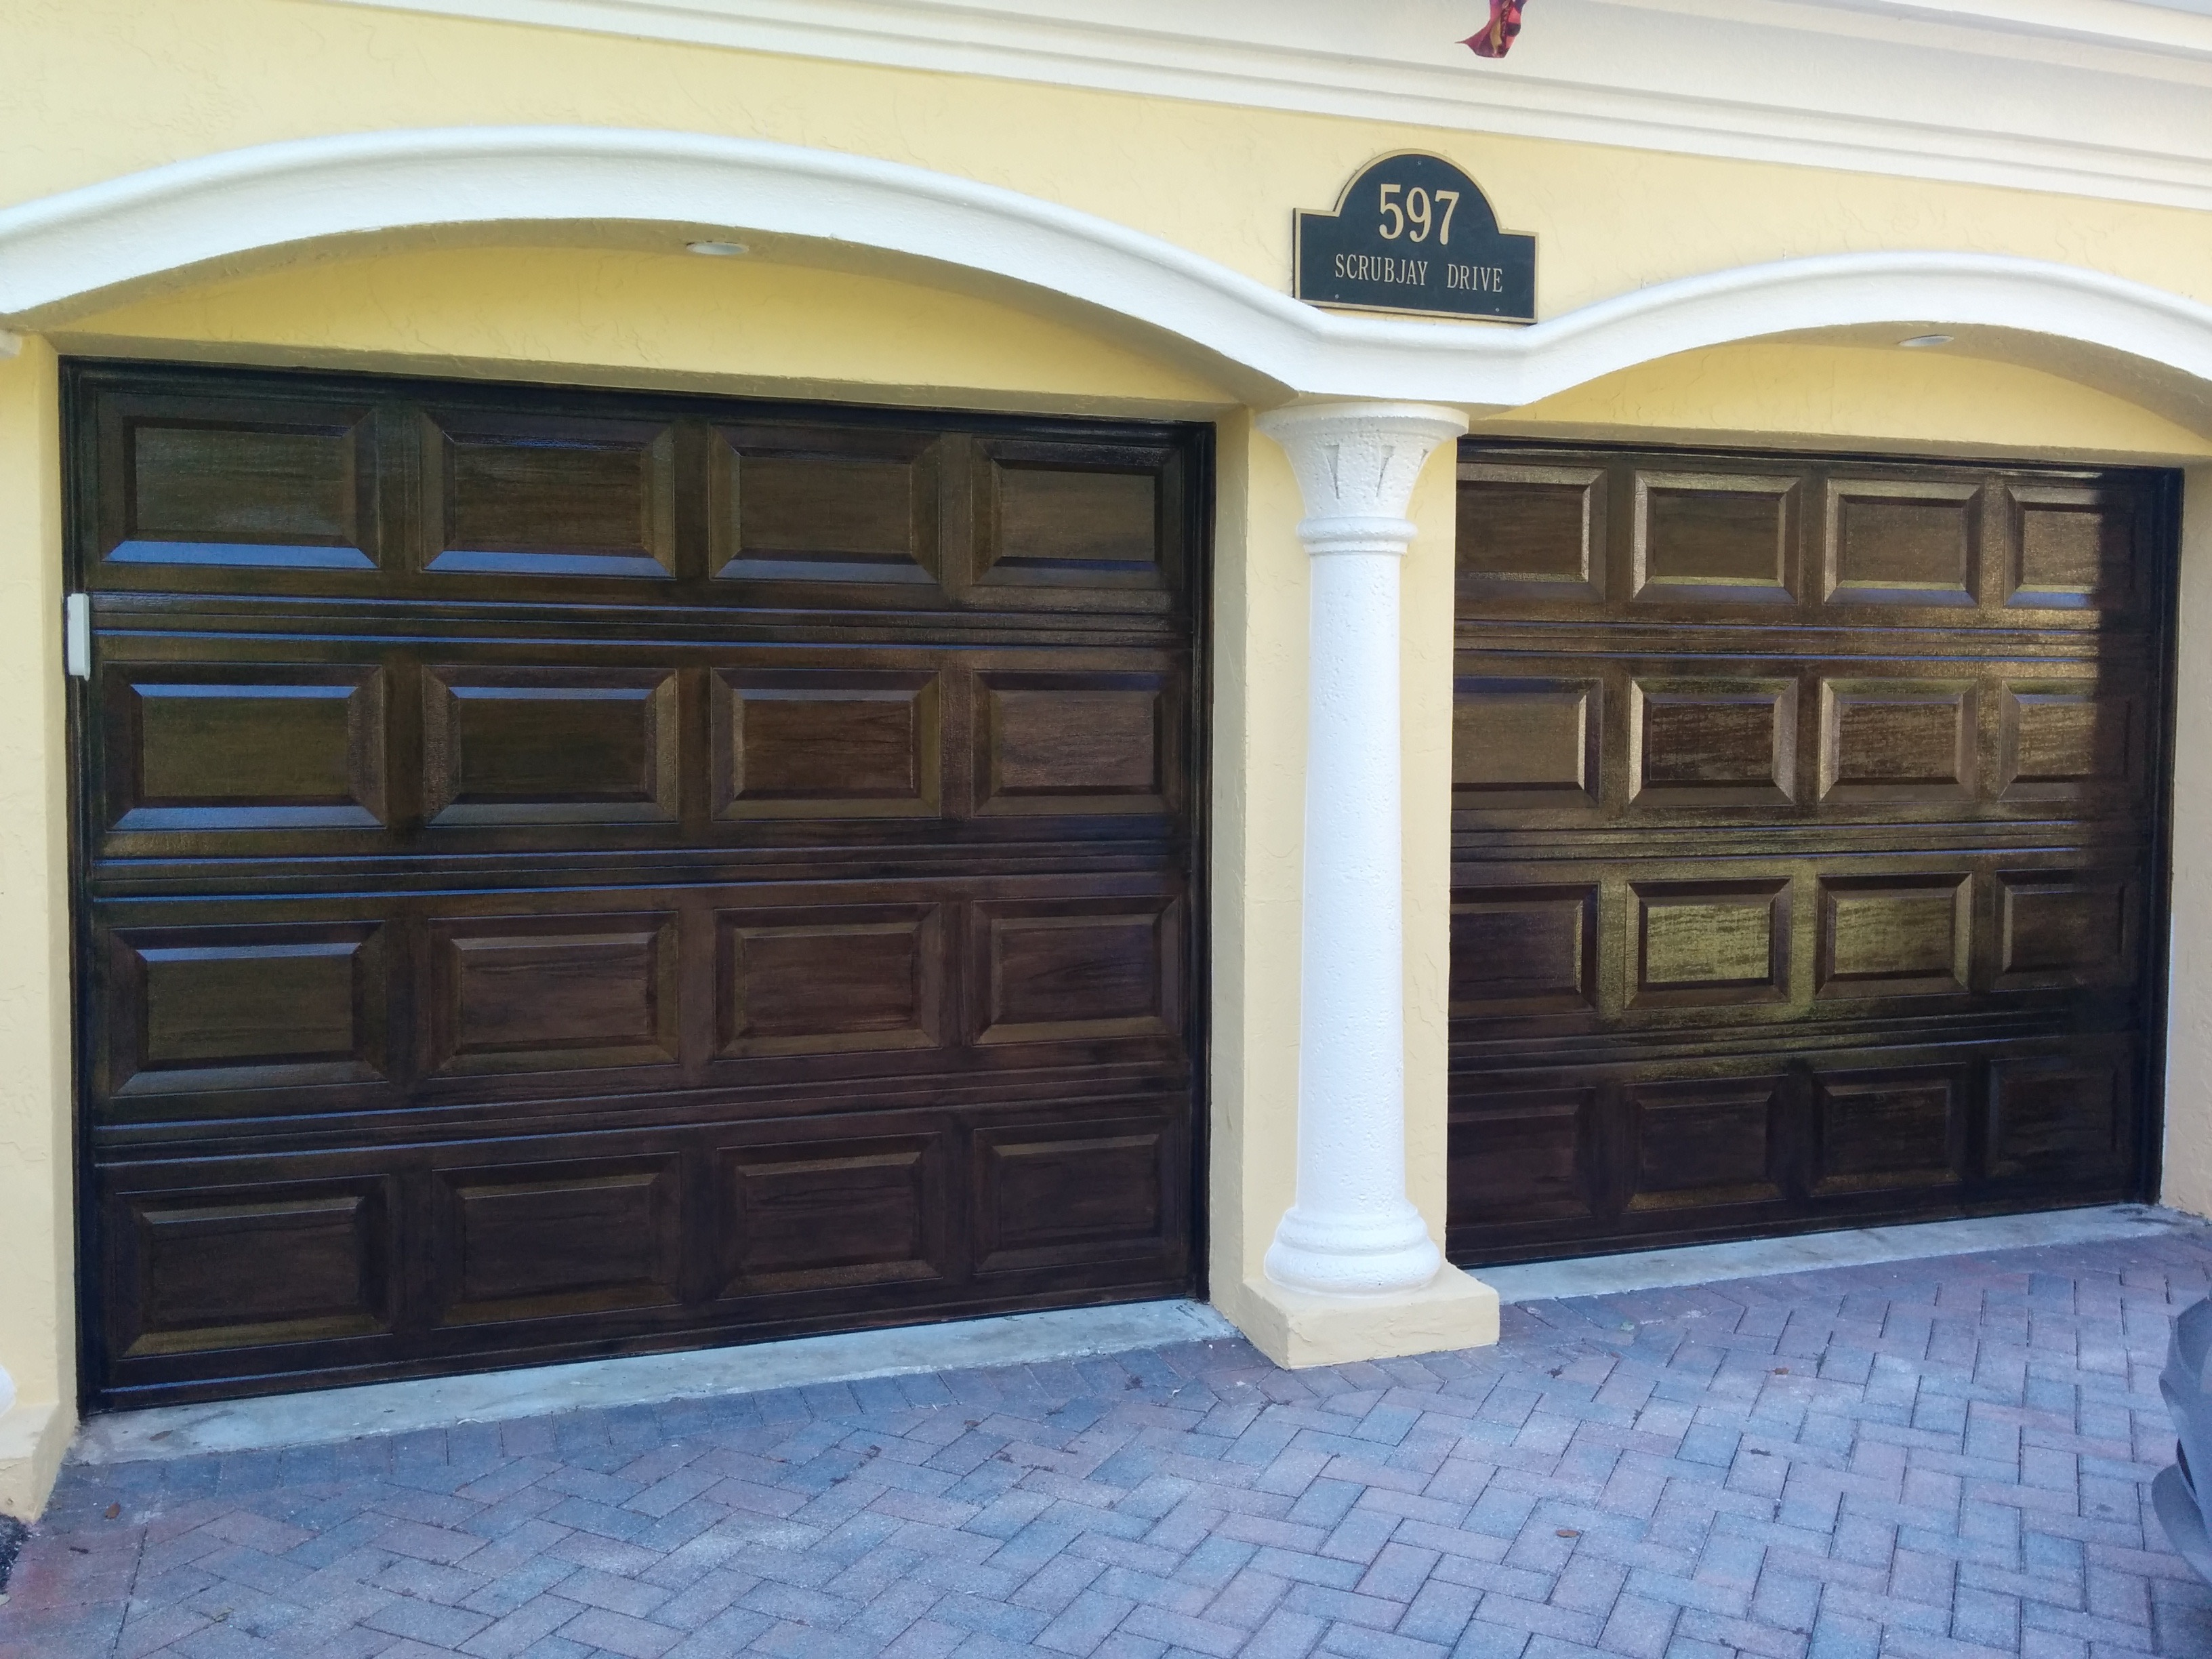 Just look at these gorgeous garage doors u2026 they look so expensive and inviting. But guess what? They are NOT REAL WOOD. & How to Wood Grain Garage Doors | Faux Finish | Decorative Painting ...